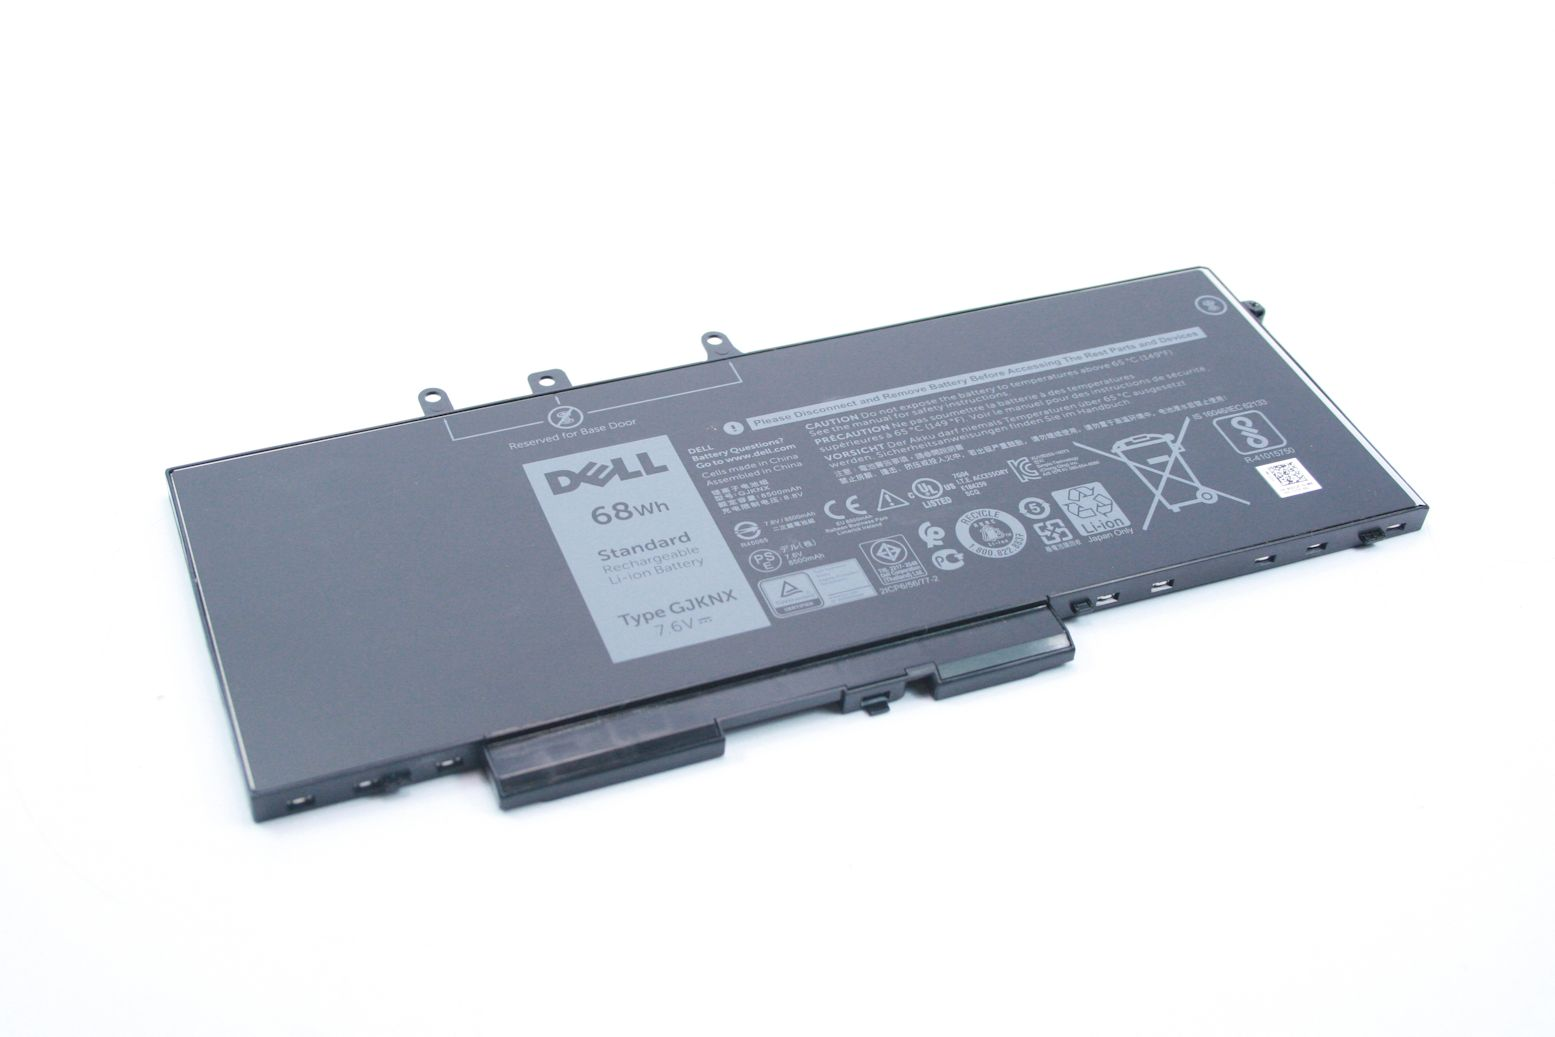 Original DELL Latitude Precision 68Wh Akku Battery 451-BBZG